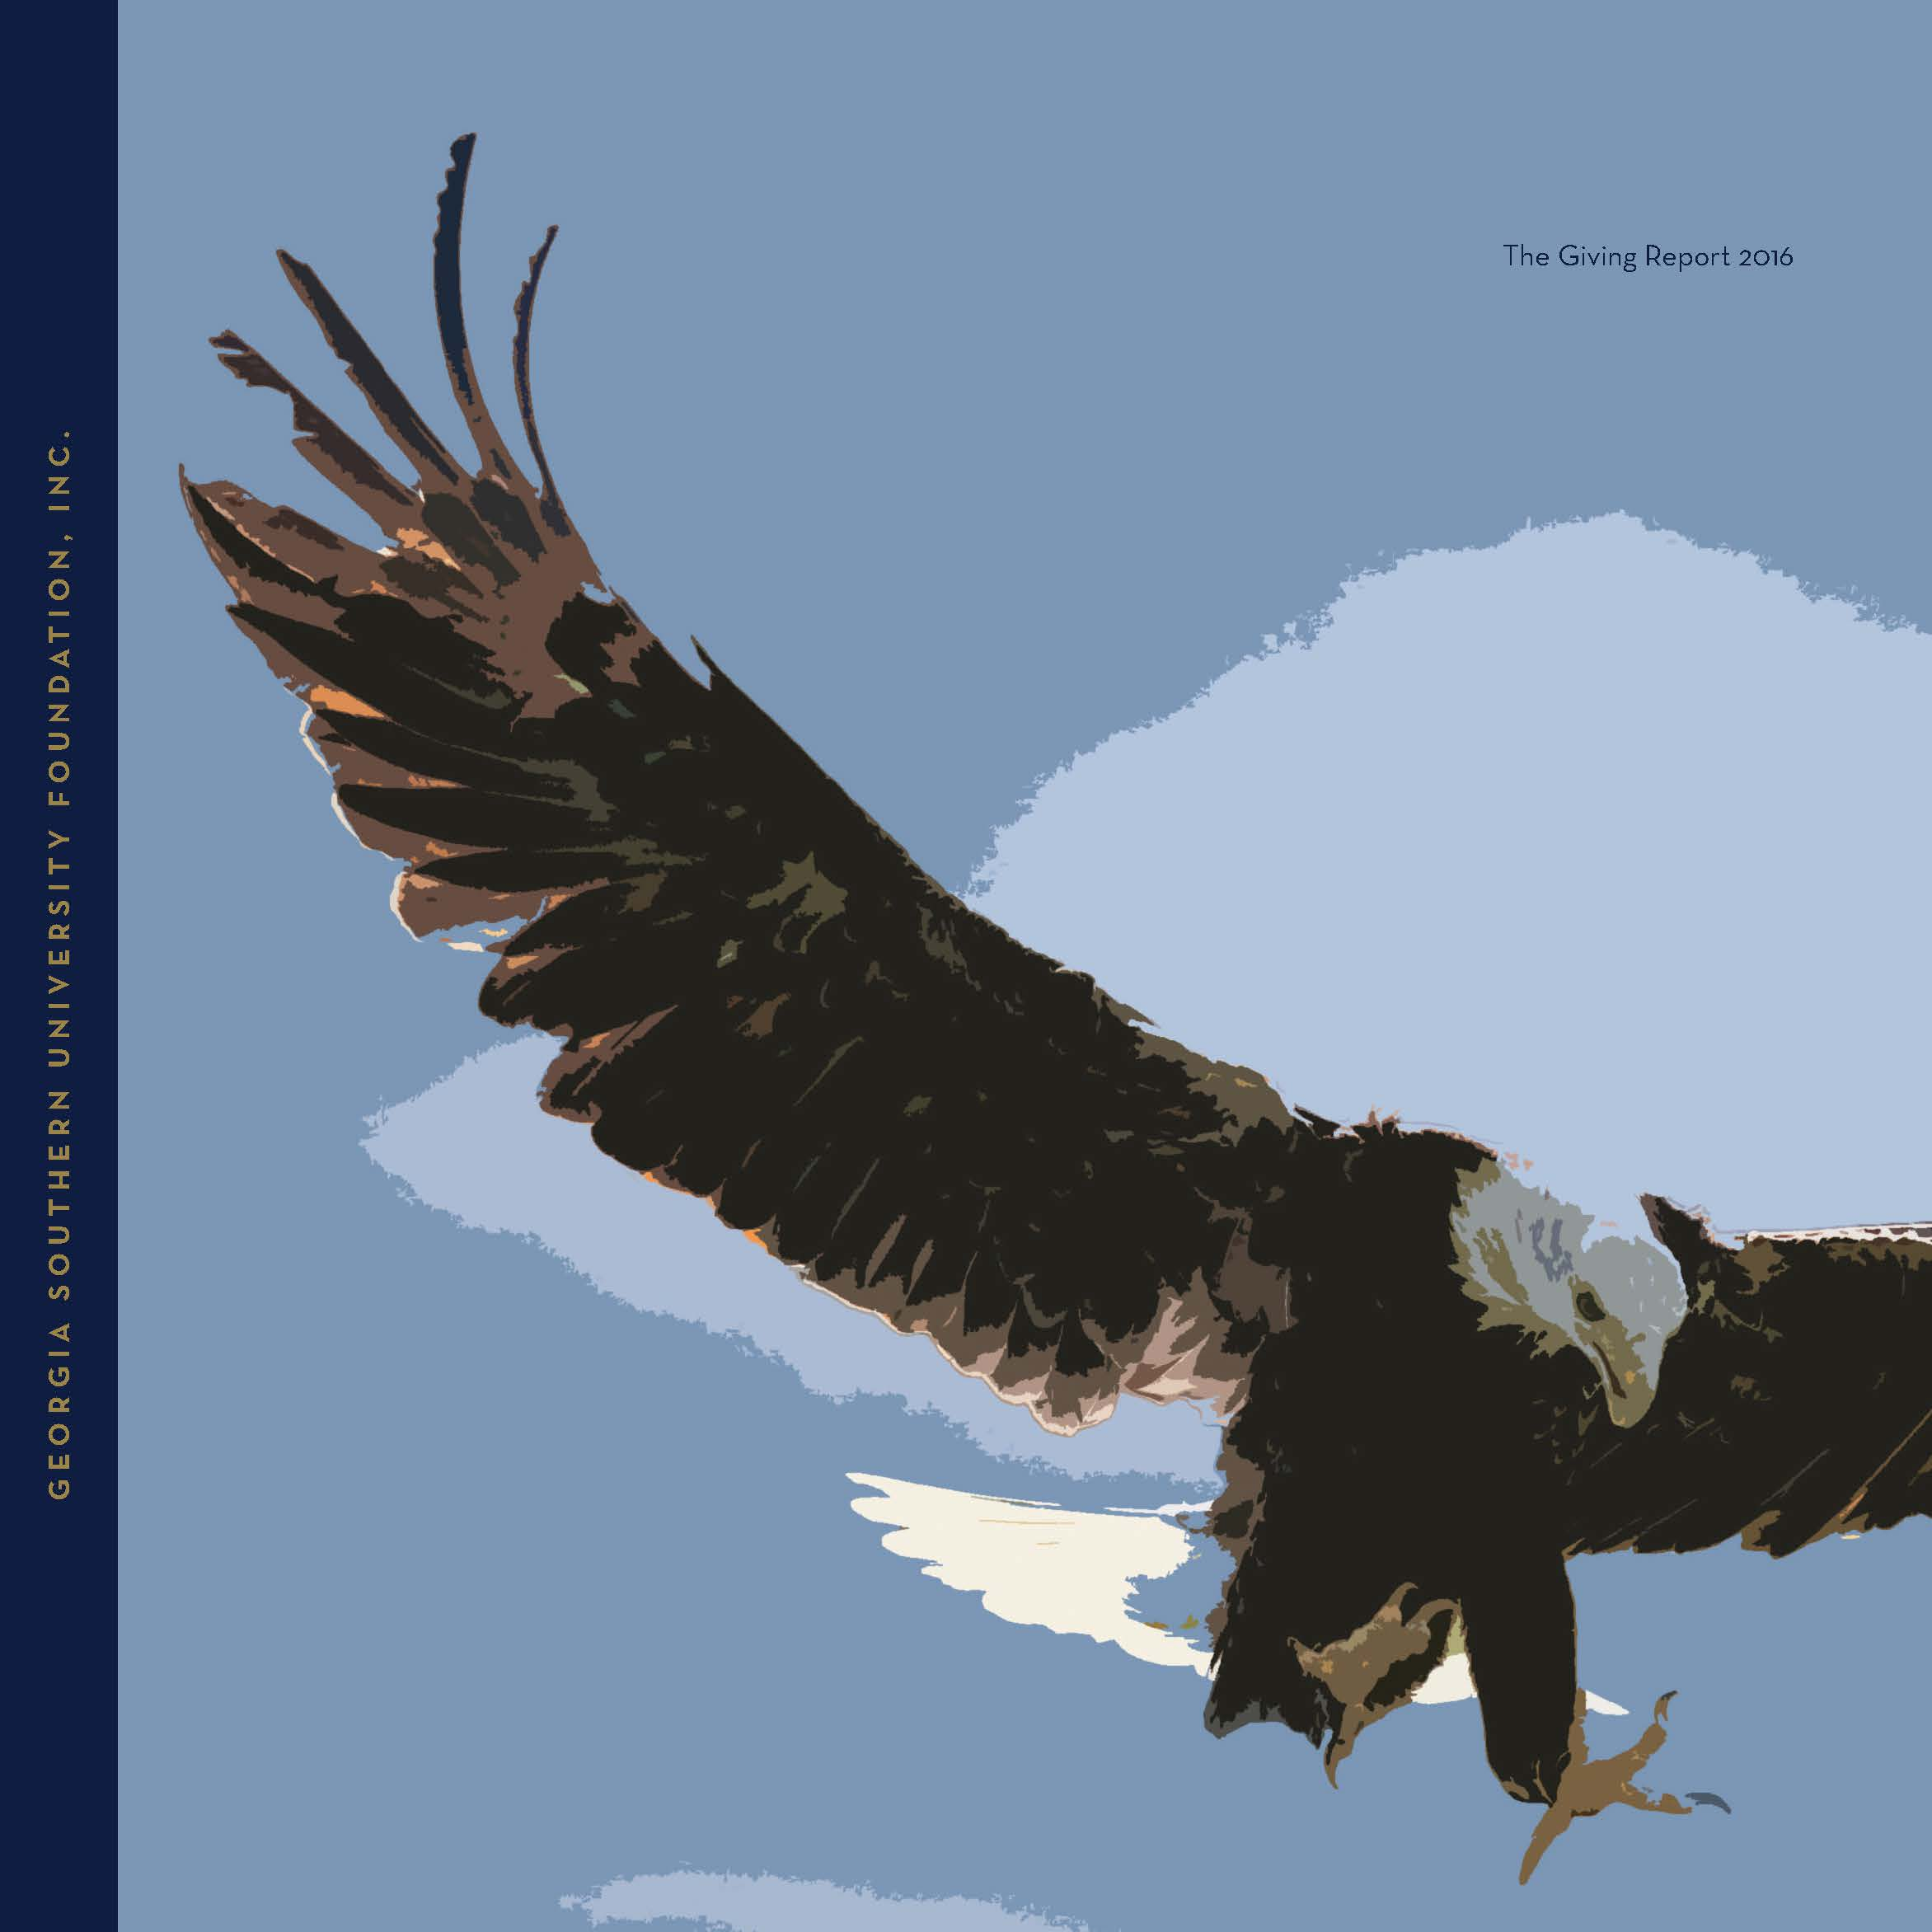 The Giving Report 2016 eagle with spread wings